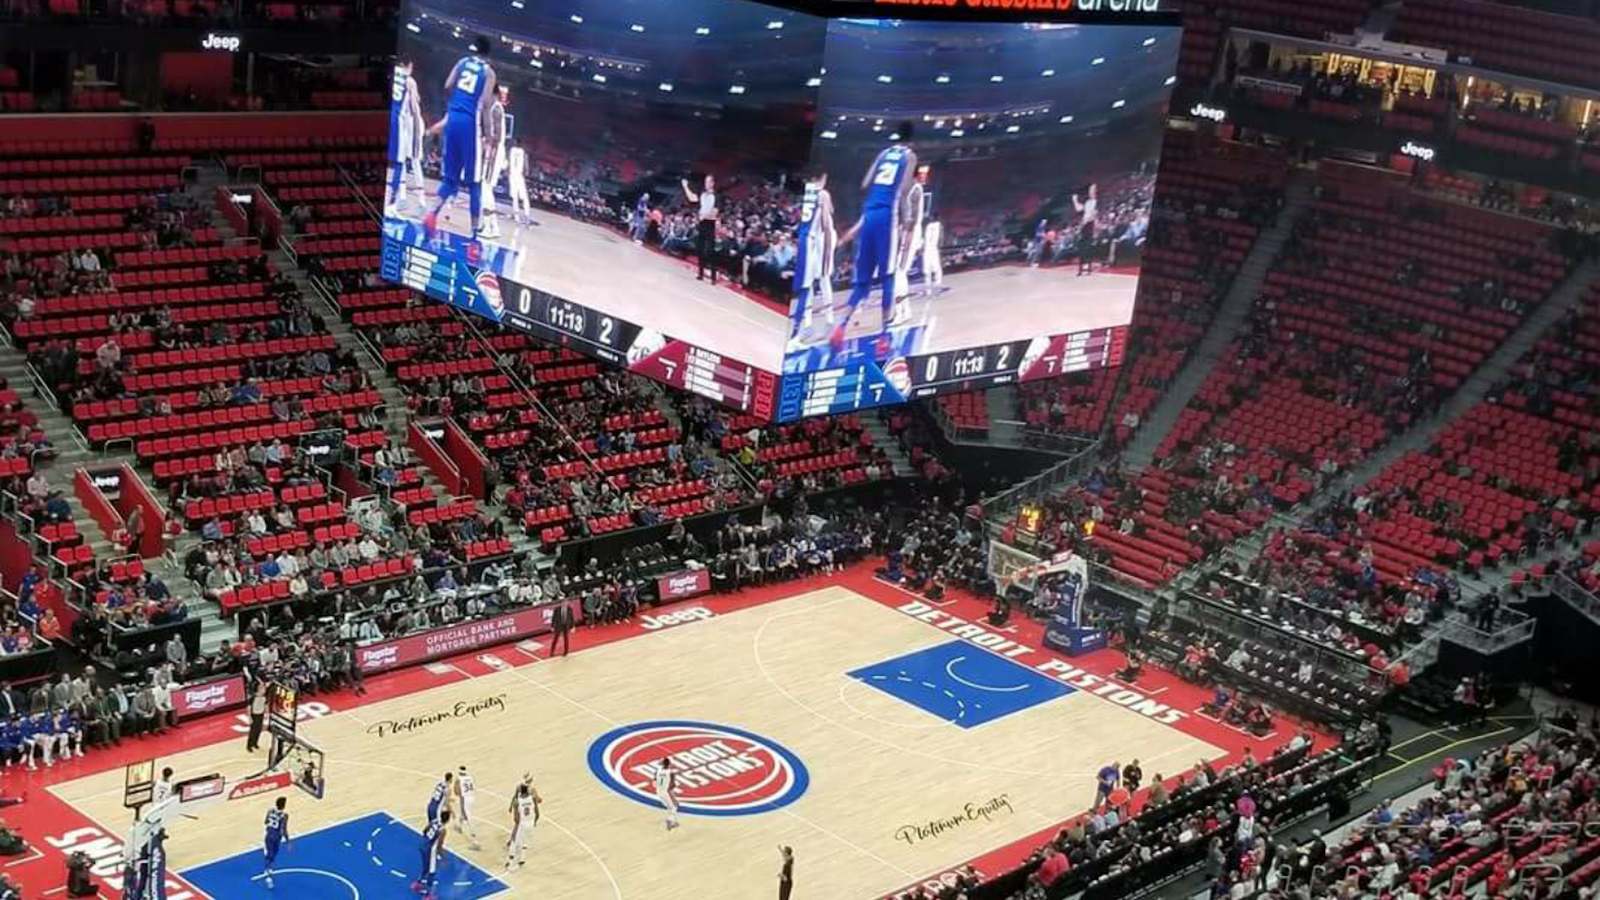 Pistons Home Games Are Already Attendance Disasters